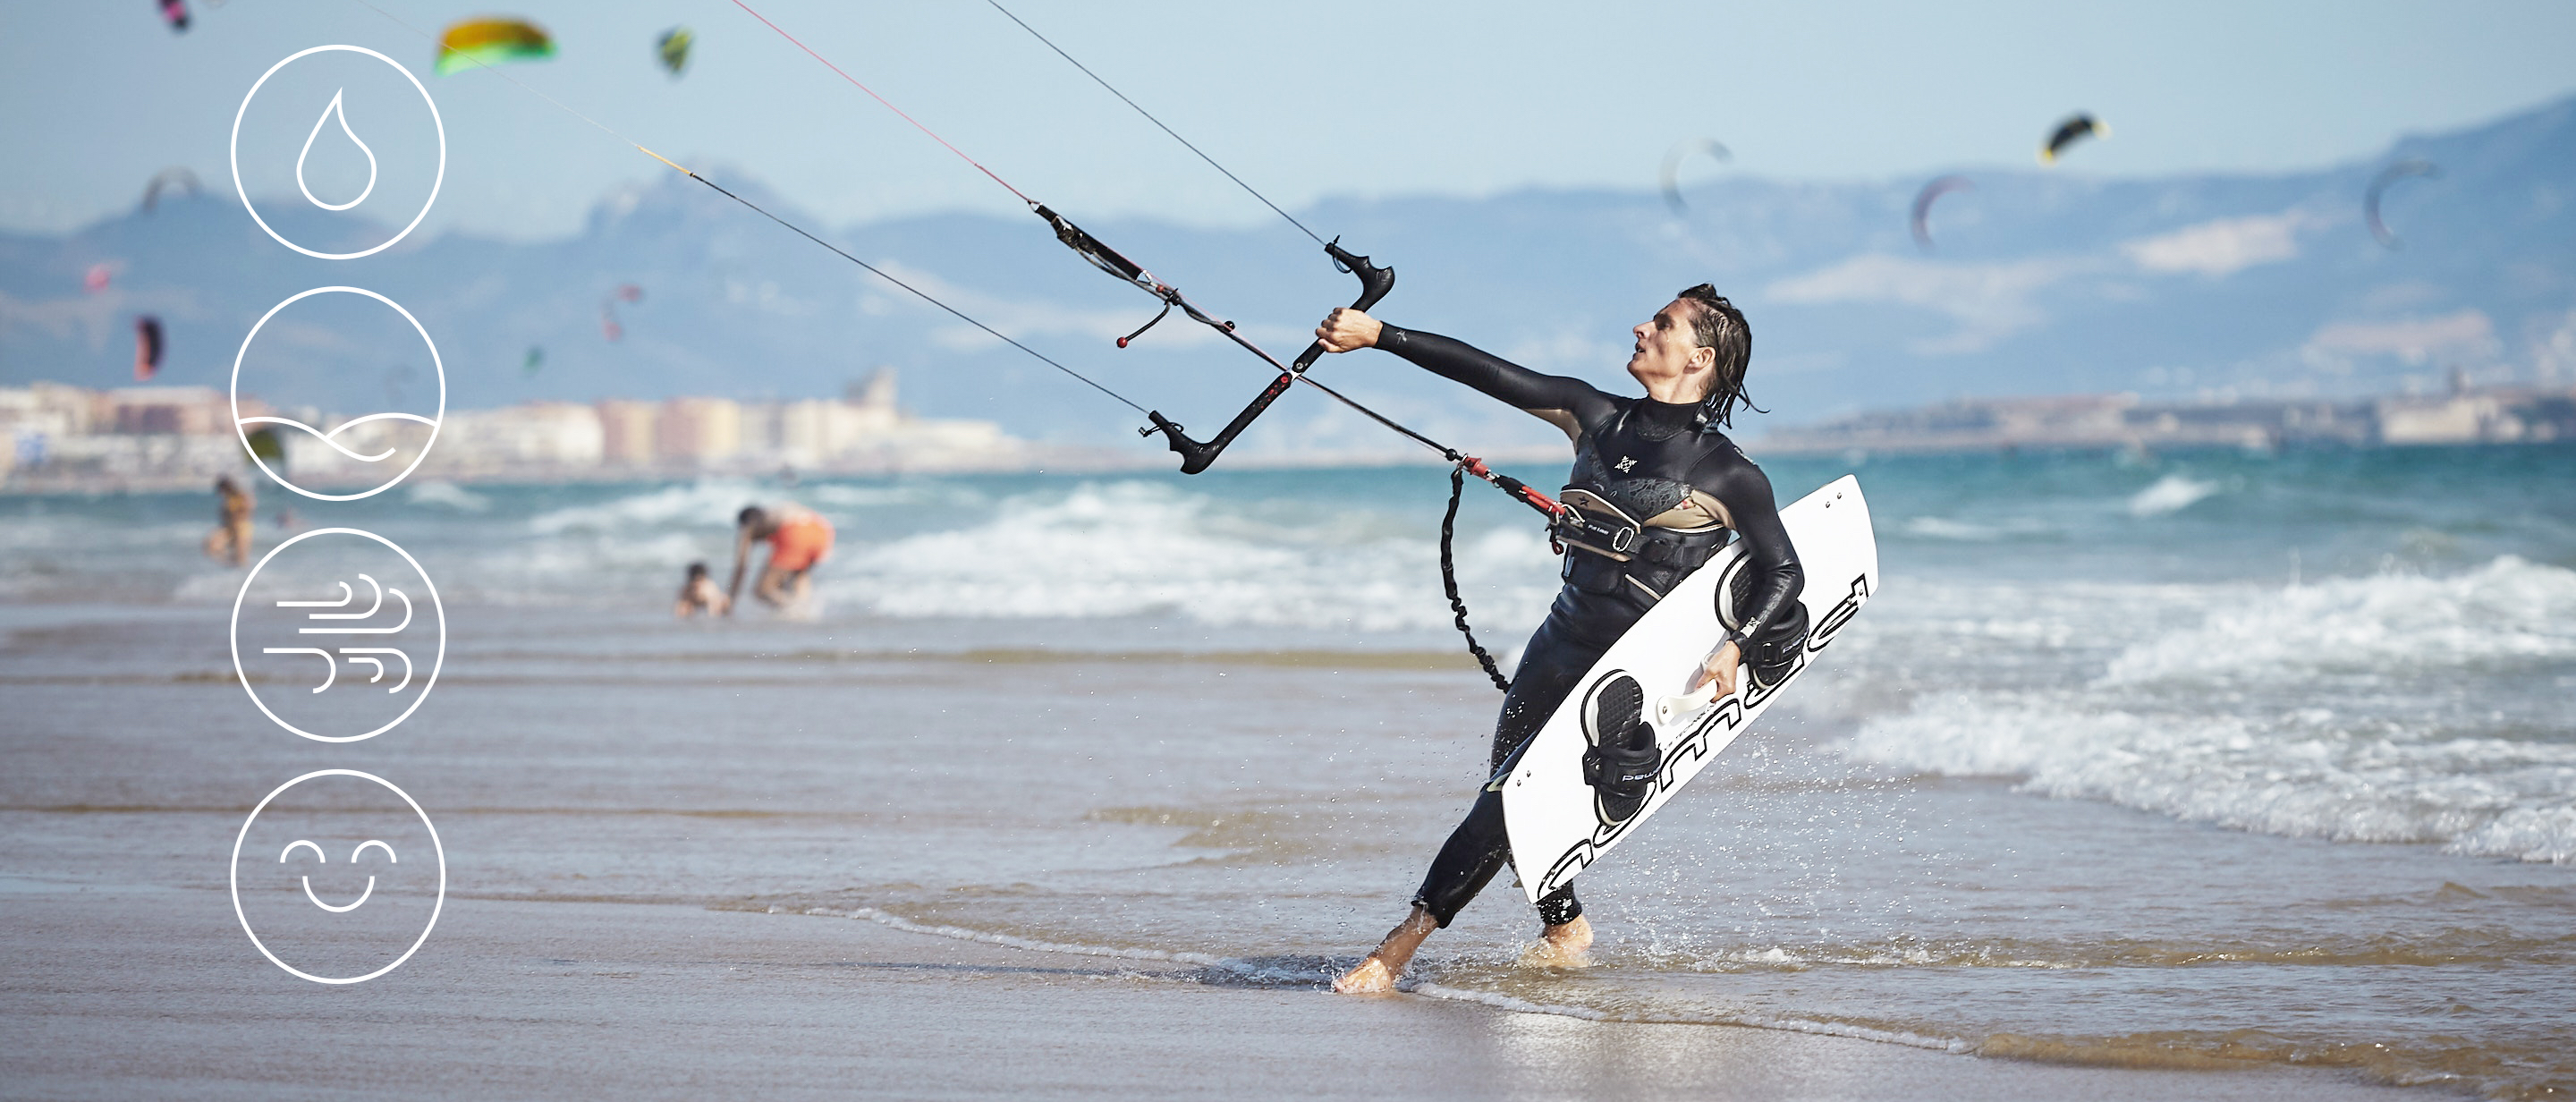 Kite surfer at the beach holding a kite and a board. Four icons overlaying the image